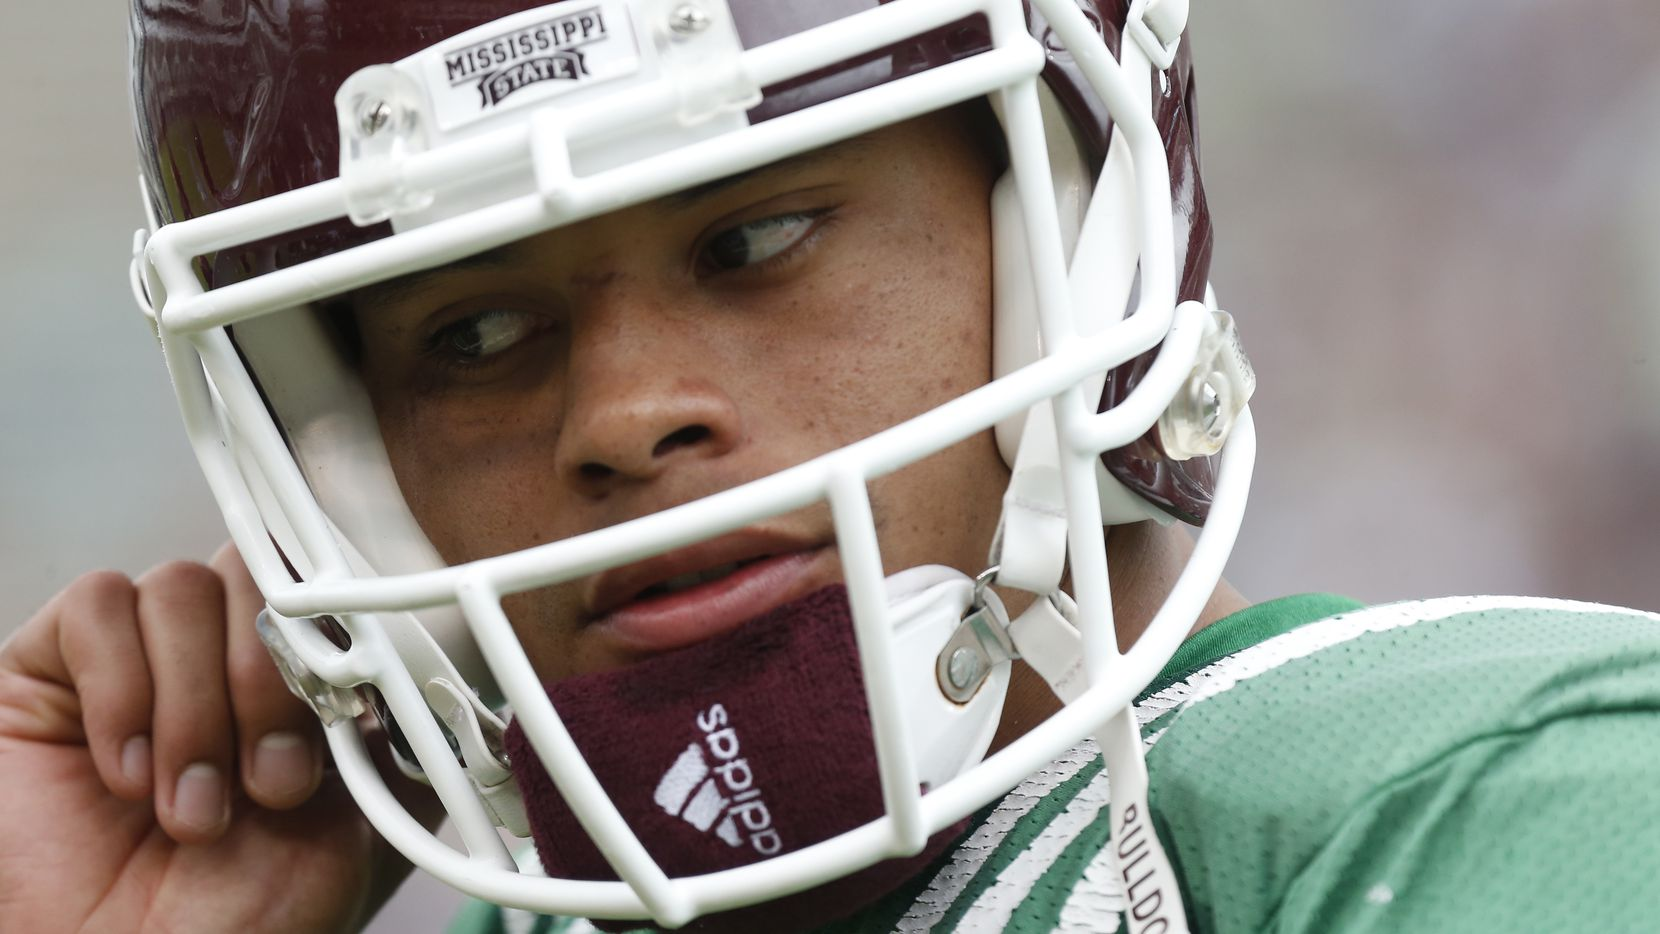 Mississippi State Maroon quarterback Dak Prescott removes his helmet after playing against the White team during their spring NCAA college football spring game, Saturday, April 18, 2015, in Starkville, Miss. (AP Photo/Rogelio V. Solis)